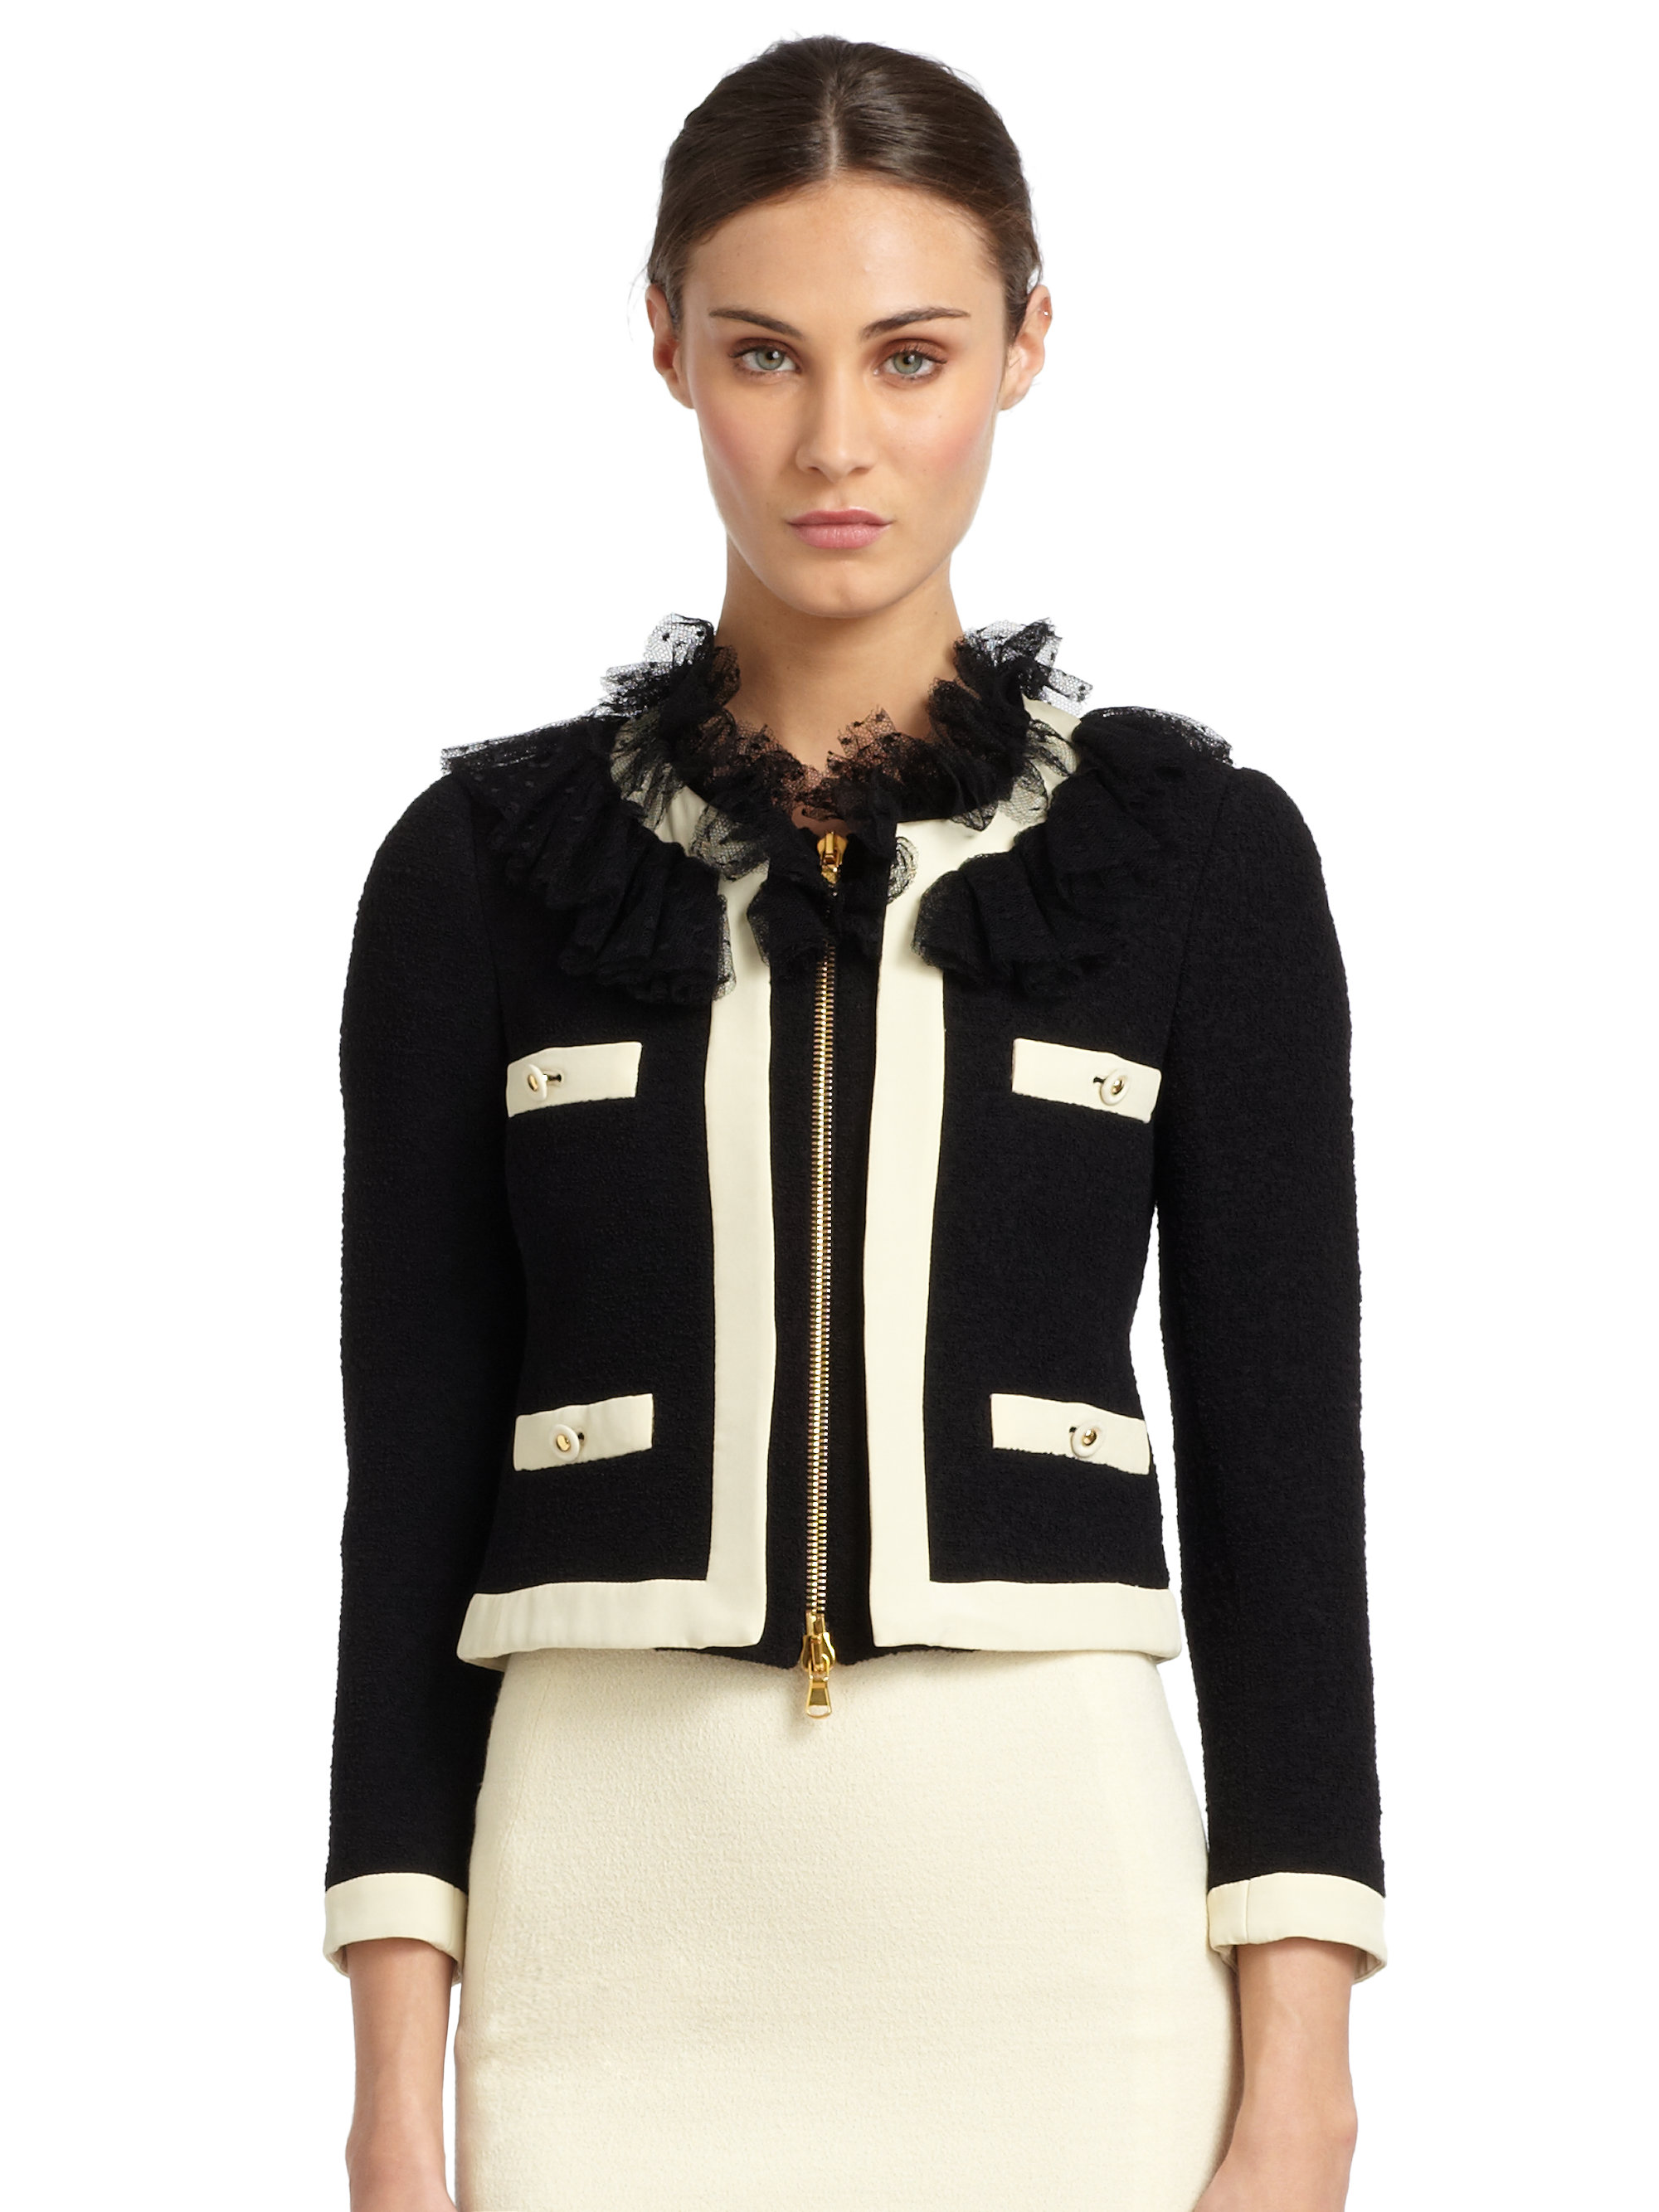 Moschino Silktrimmed Tulle Collar Boucle Jacket in Black | Lyst